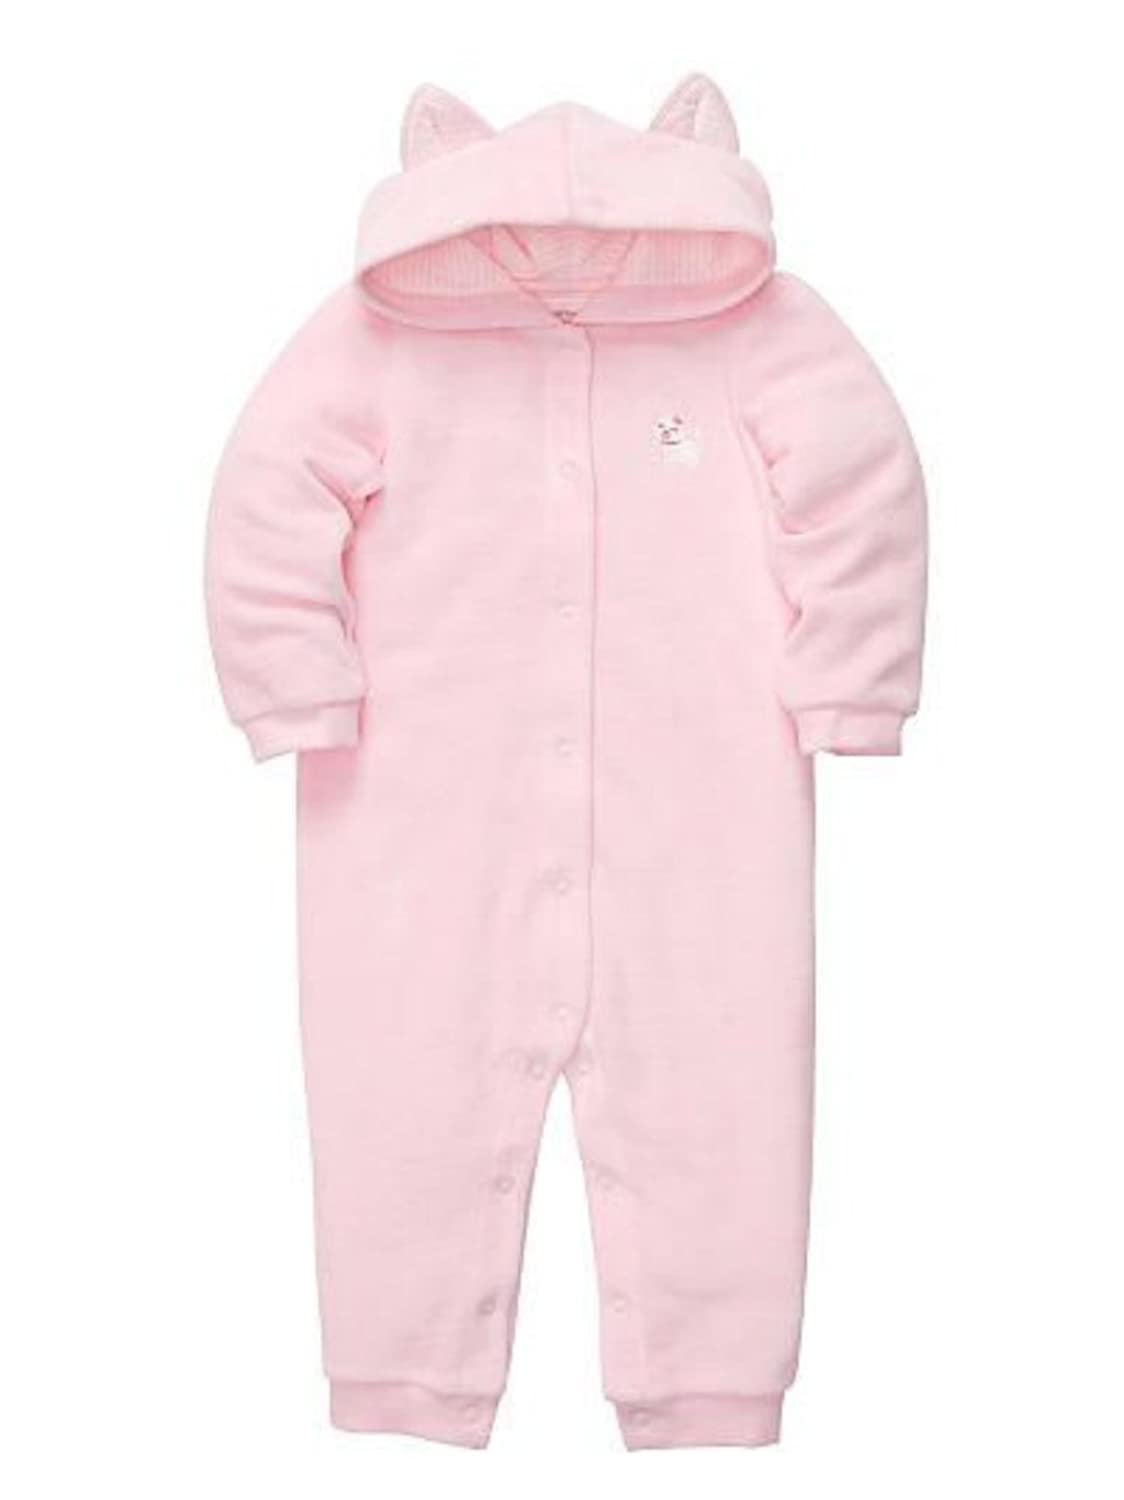 Carters Infant Girls Pink Cat Hooded Sleeper Sleep & Play Pajamas